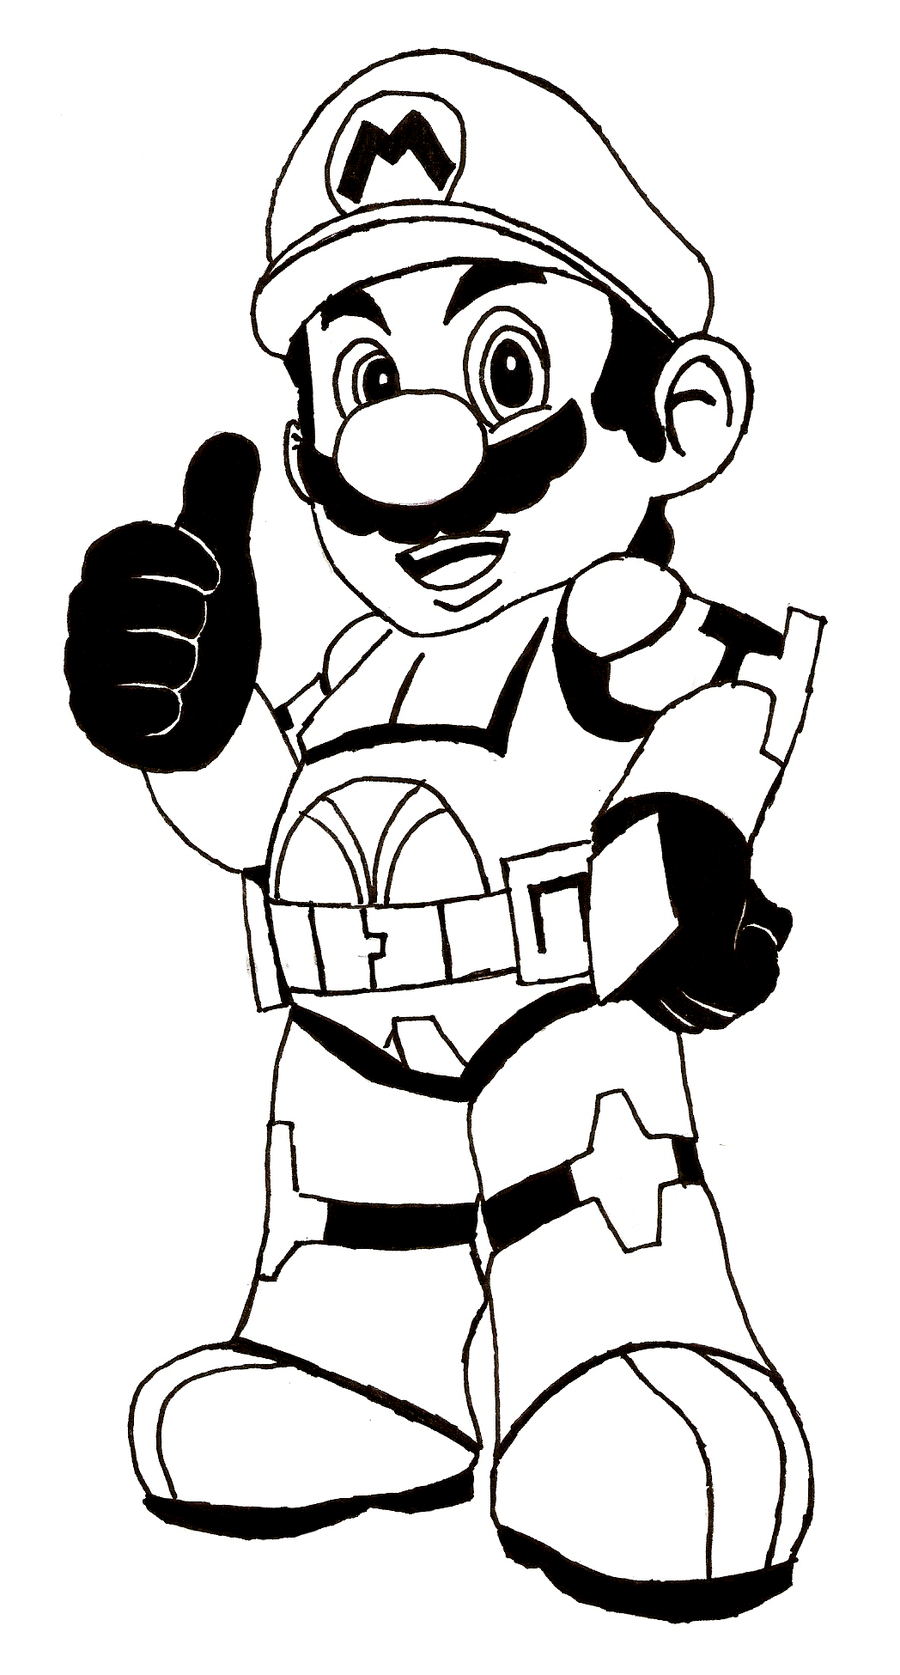 900x1675 Free Printable Mario Coloring Pages For Kids